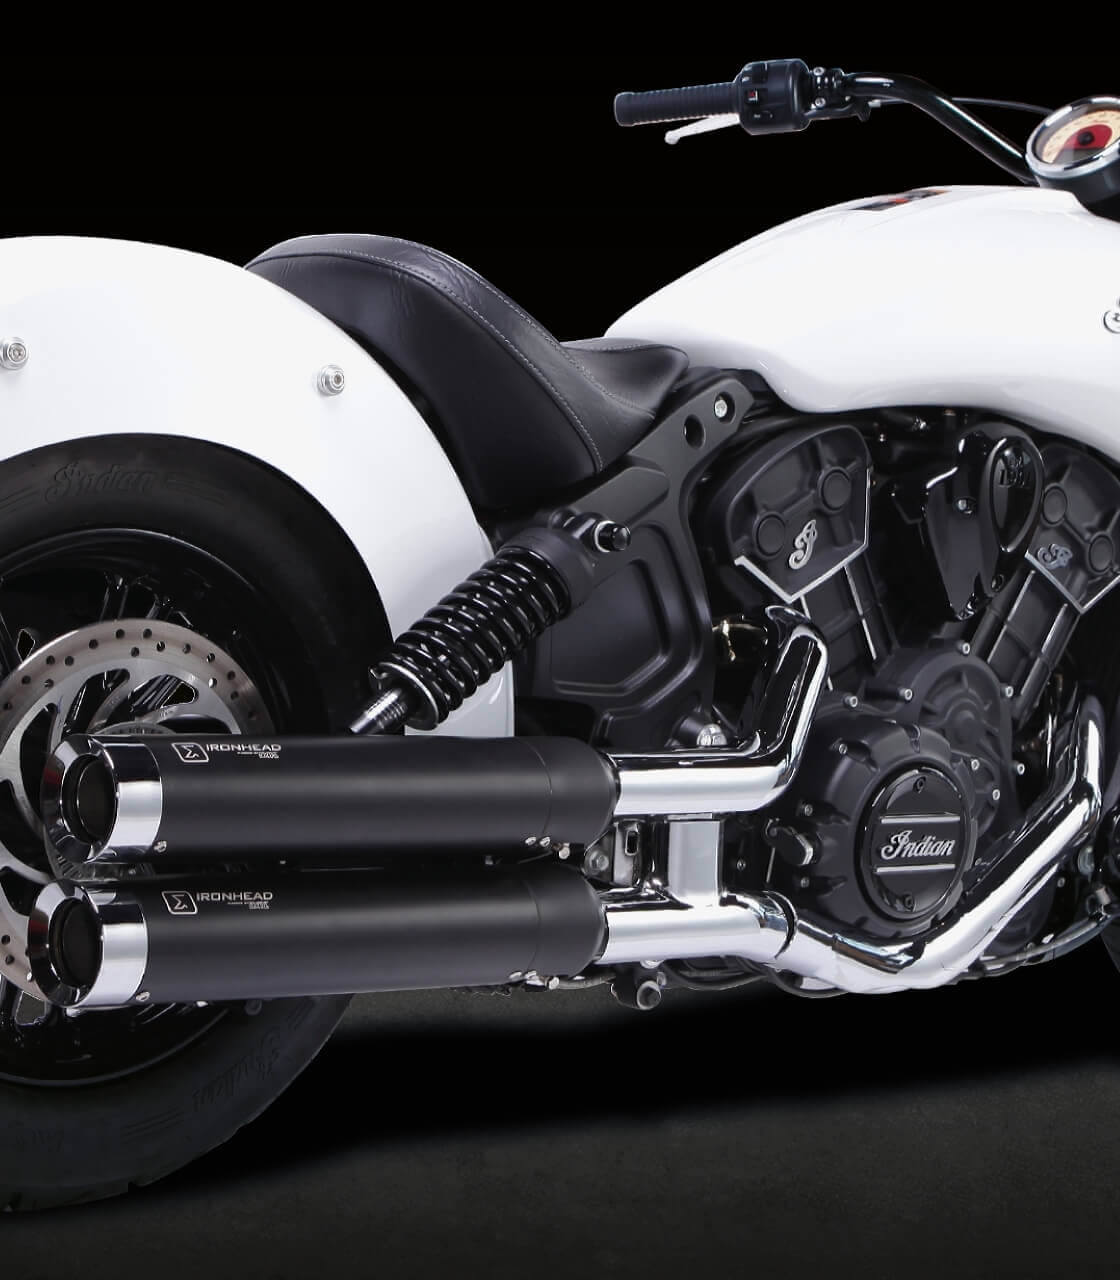 ironhead hc1 2b exhaust for indian scout scout bobber 2015 19 color black